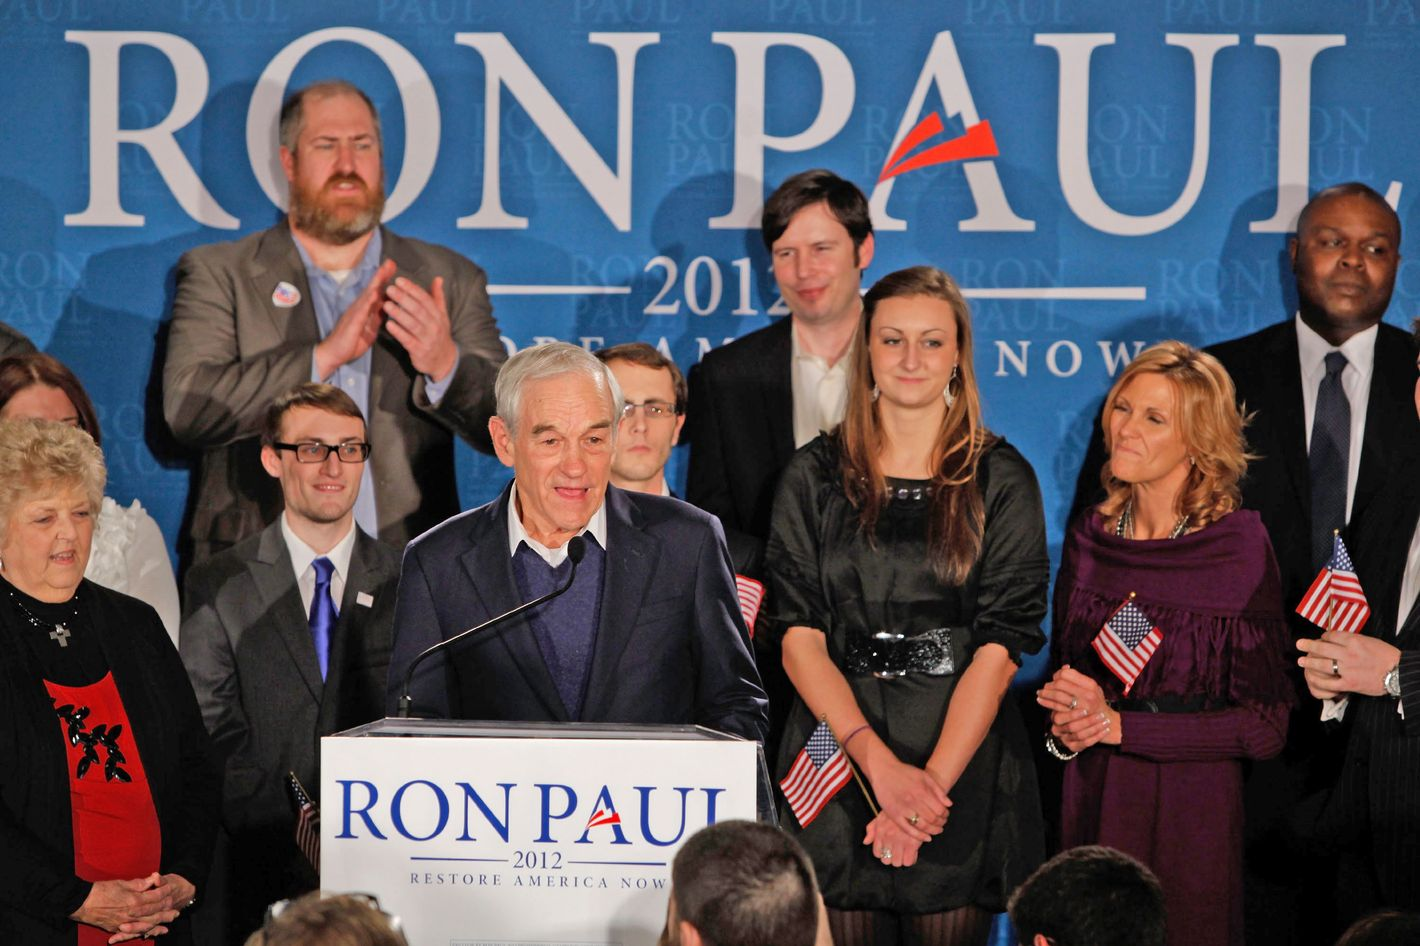 MANCHESTER, NH - JANUARY 10:  Republican presidential candidate, U.S. Rep. Ron Paul (R-TX), speaks to supporters at his primary night campaign rally on January 10, 2012 in Manchester, New Hampshire. According to early results, Paul finished second behind former Massachusetts Gov. Mitt Romney in the first in the nation primary.  (Photo by Andrew Burton/Getty Images)